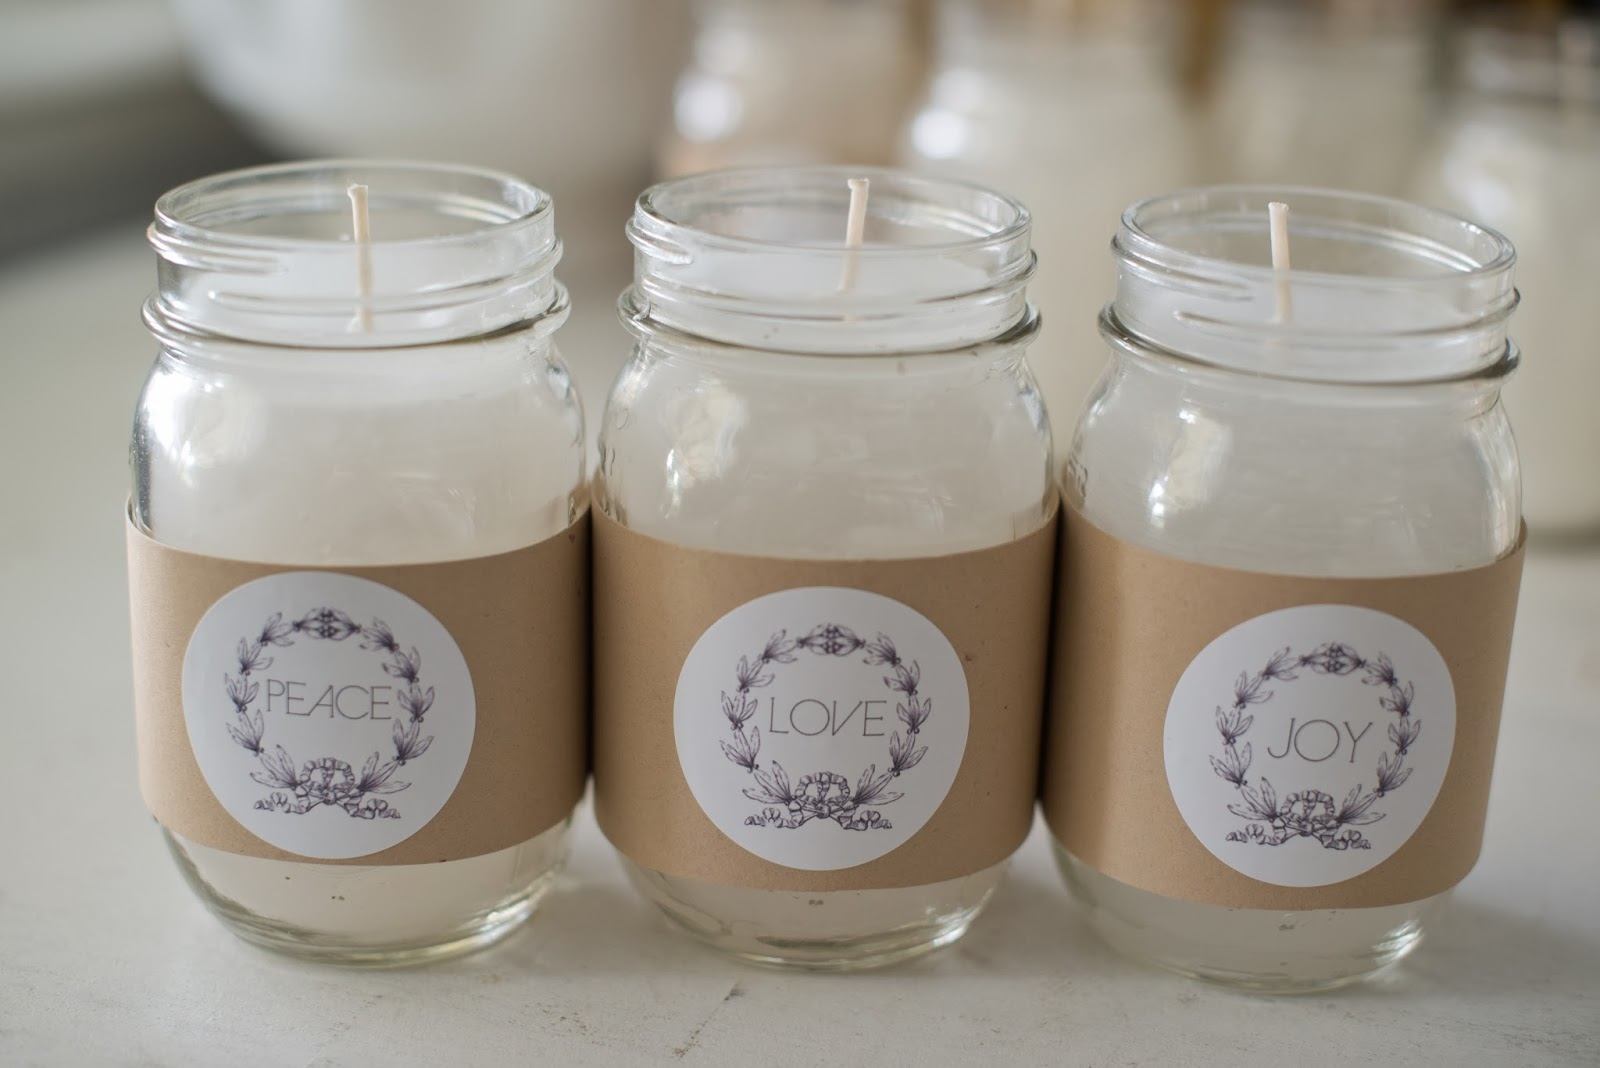 domestic fashionista diy canning jar candles tutorial gift label